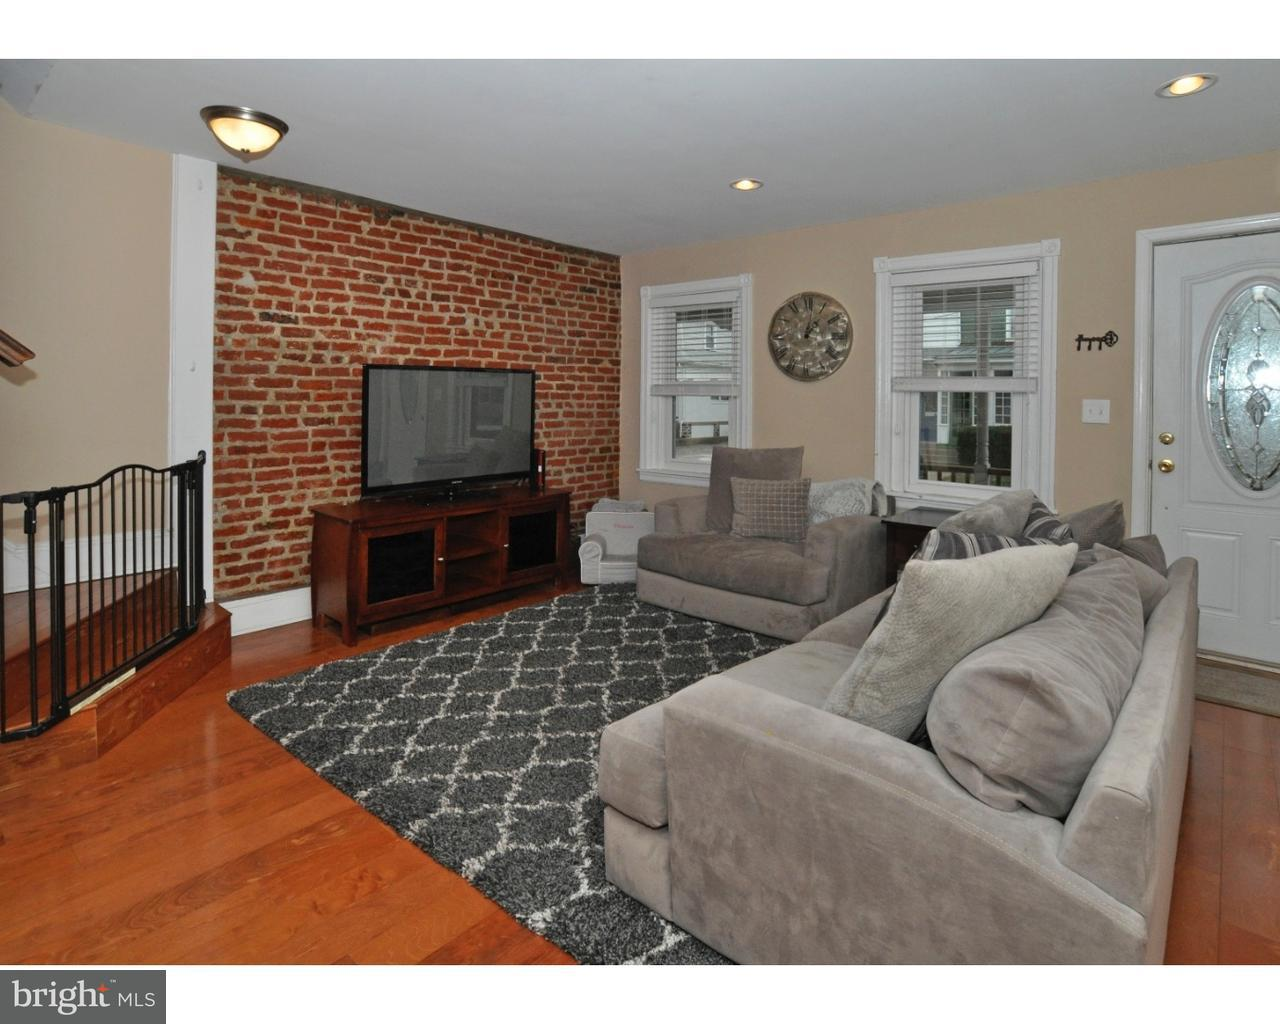 413 COTTMAN ST, JENKINTOWN - Listed at $249,900, JENKINTOWN